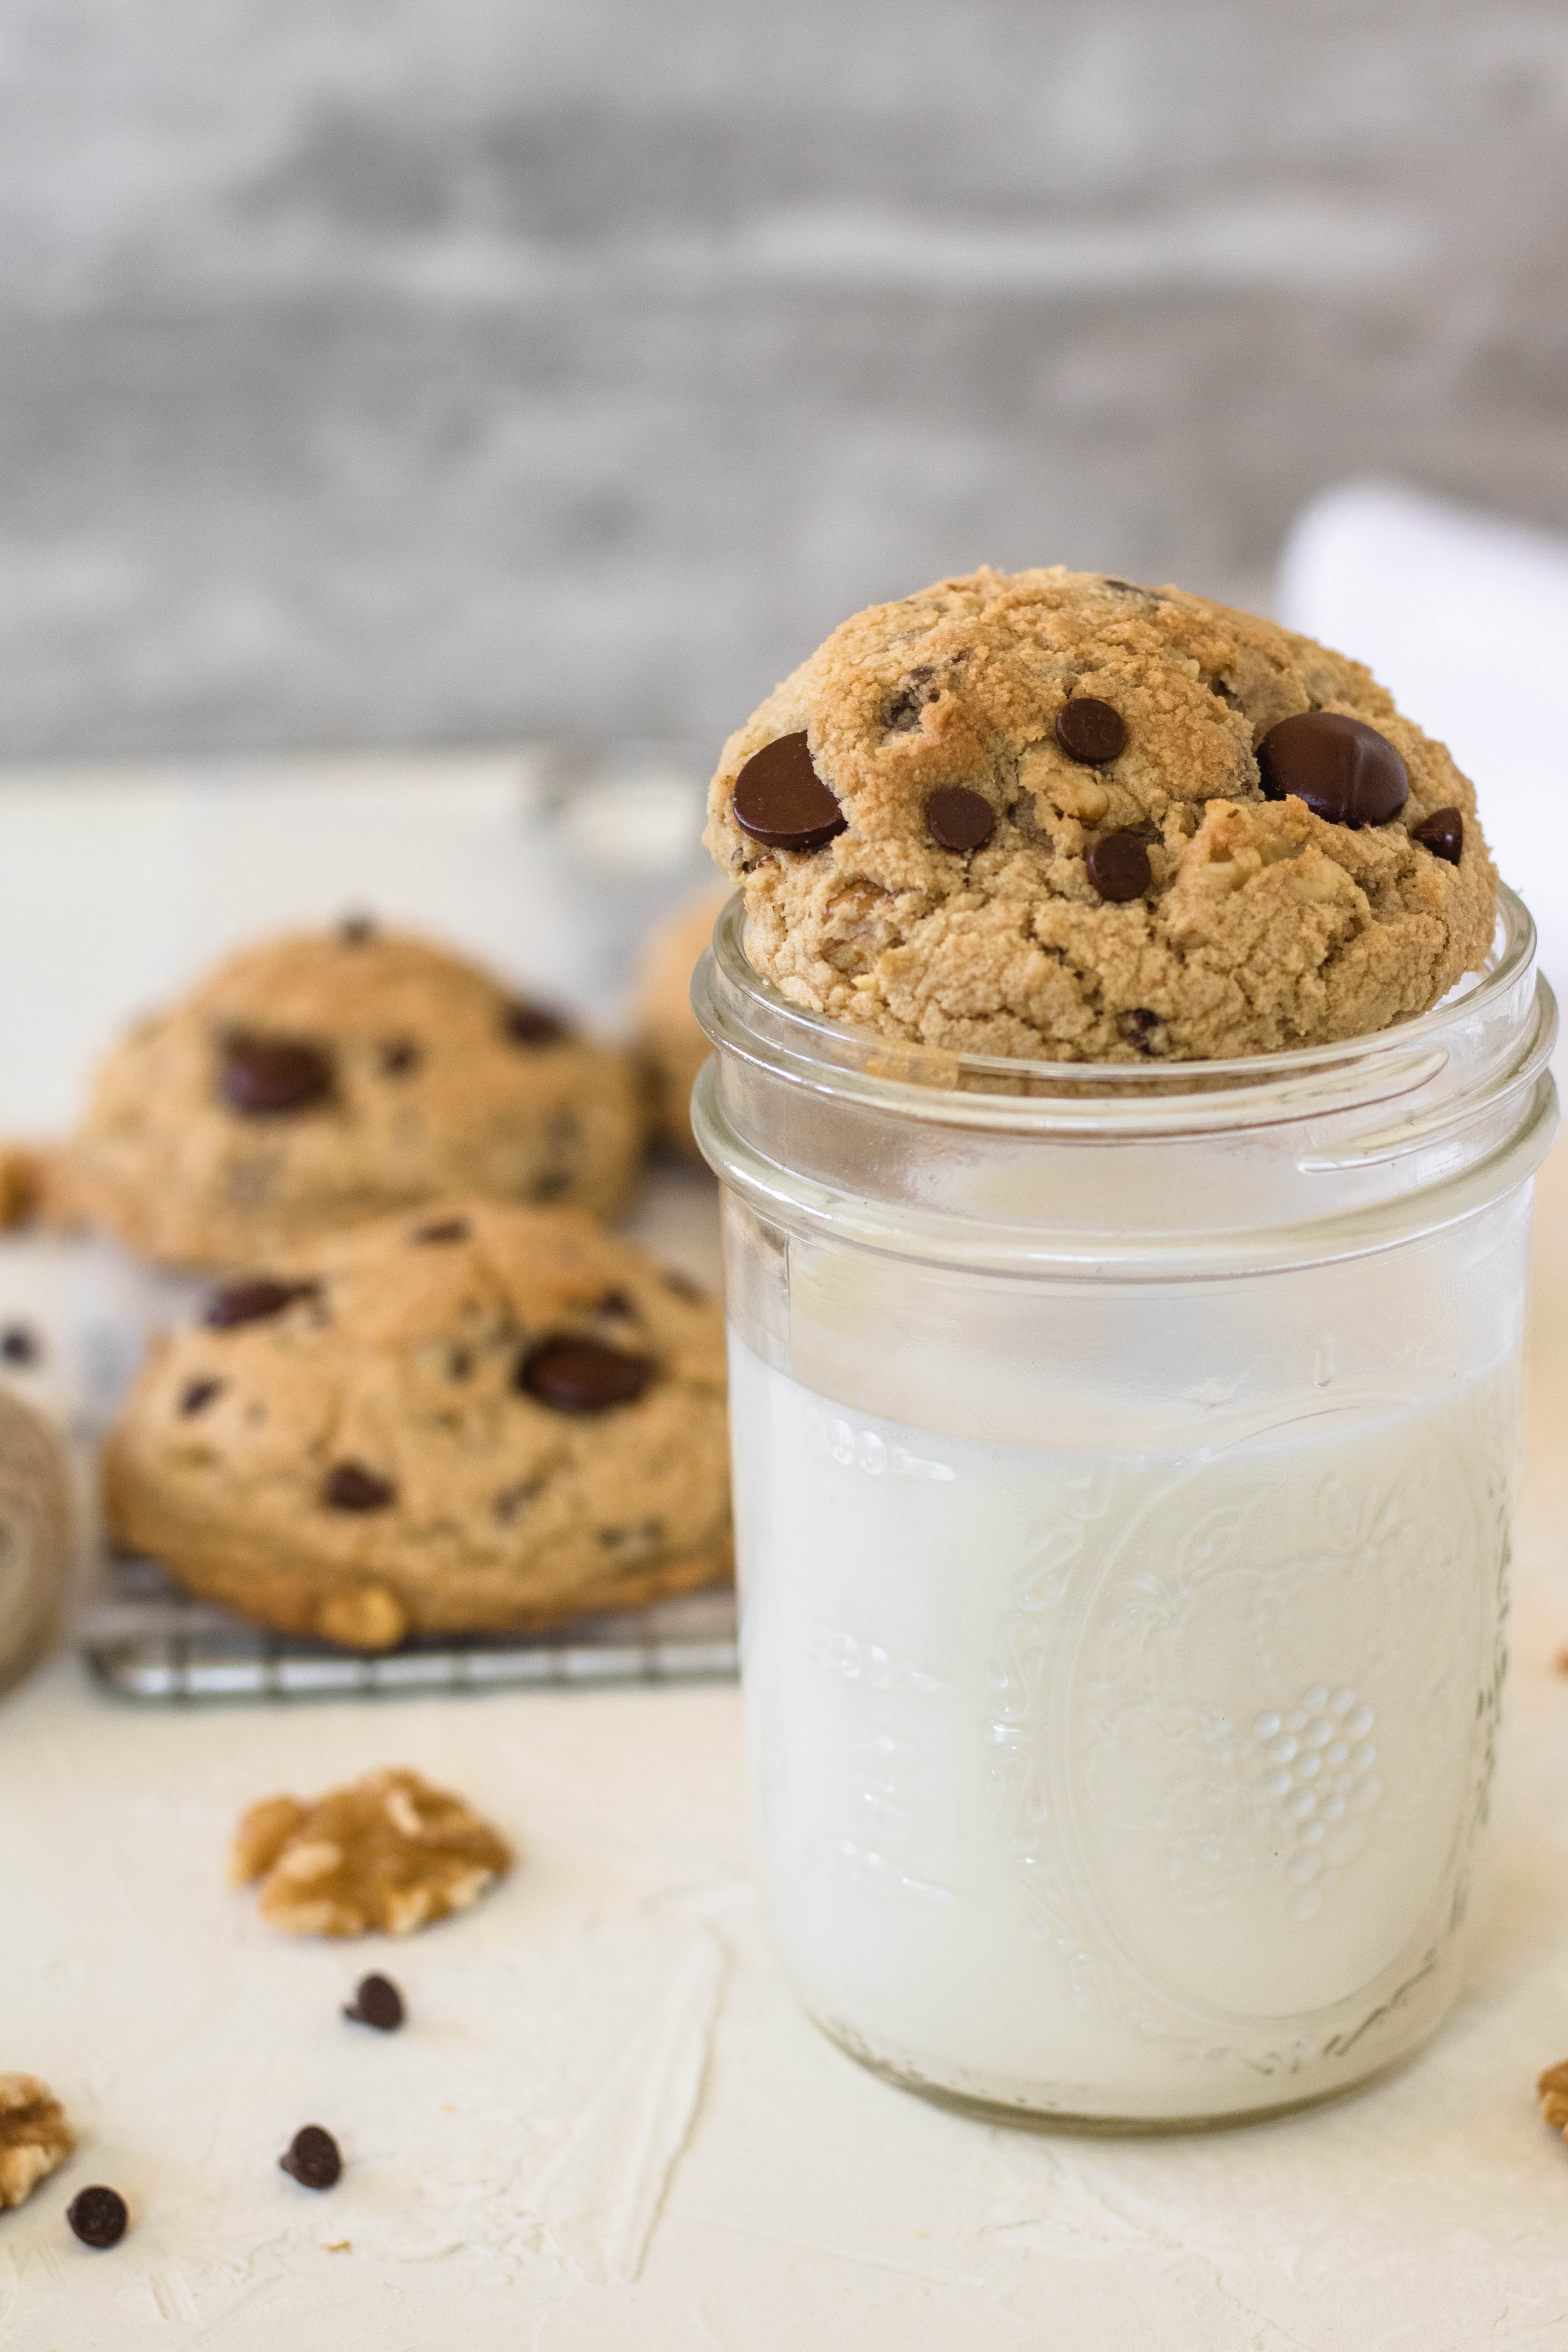 tips on how to make the perfect walnut chocolate chip cookies